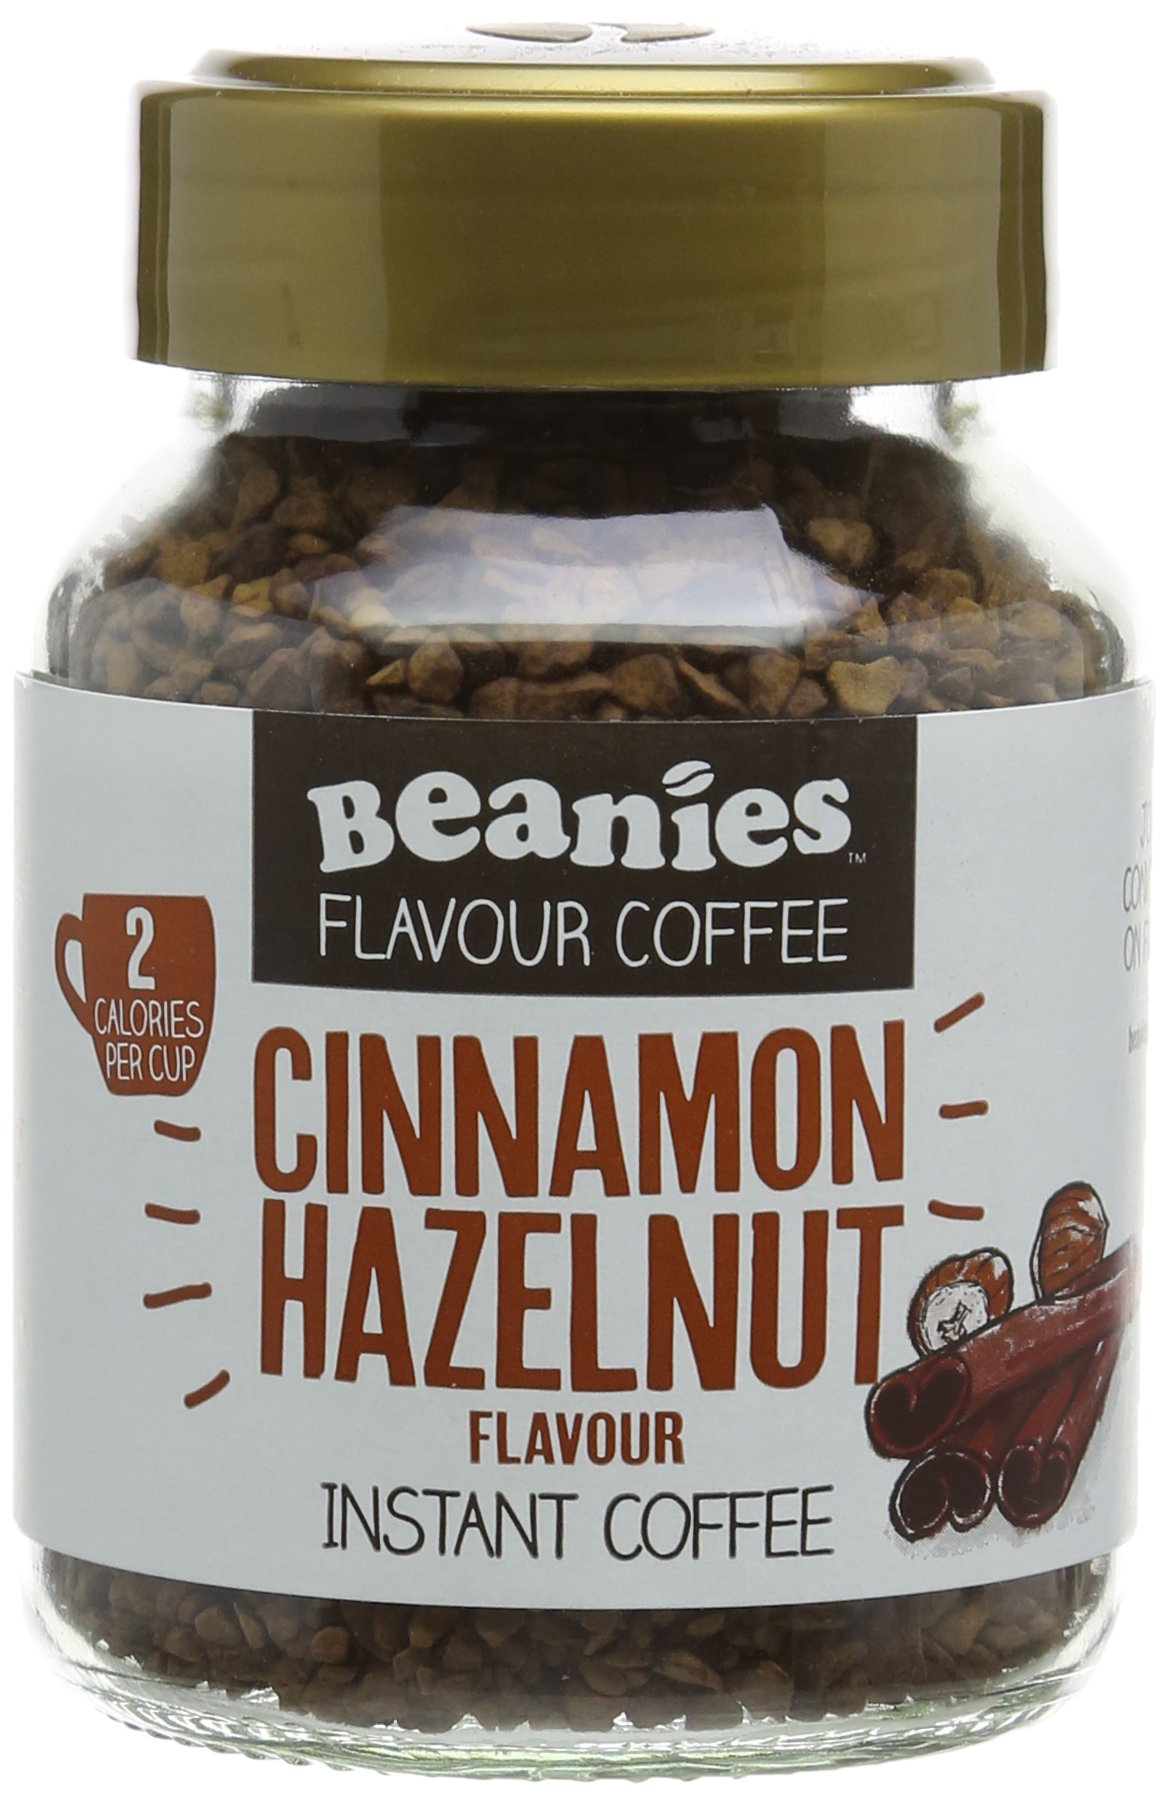 Beanies Cinnamon and Hazelnut Flavoured Instant Coffee 50 g (Pack of 6)